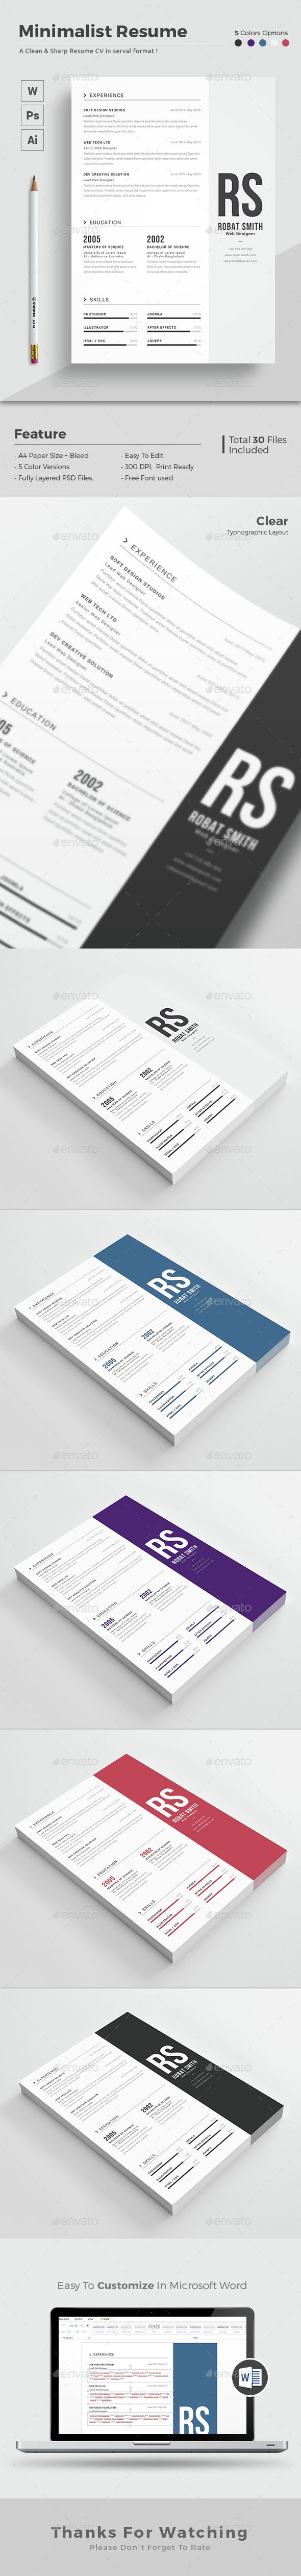 format for writing a reference letter%0A Minimalist Resume Template PSD  Vector EPS  AI  Download here  http